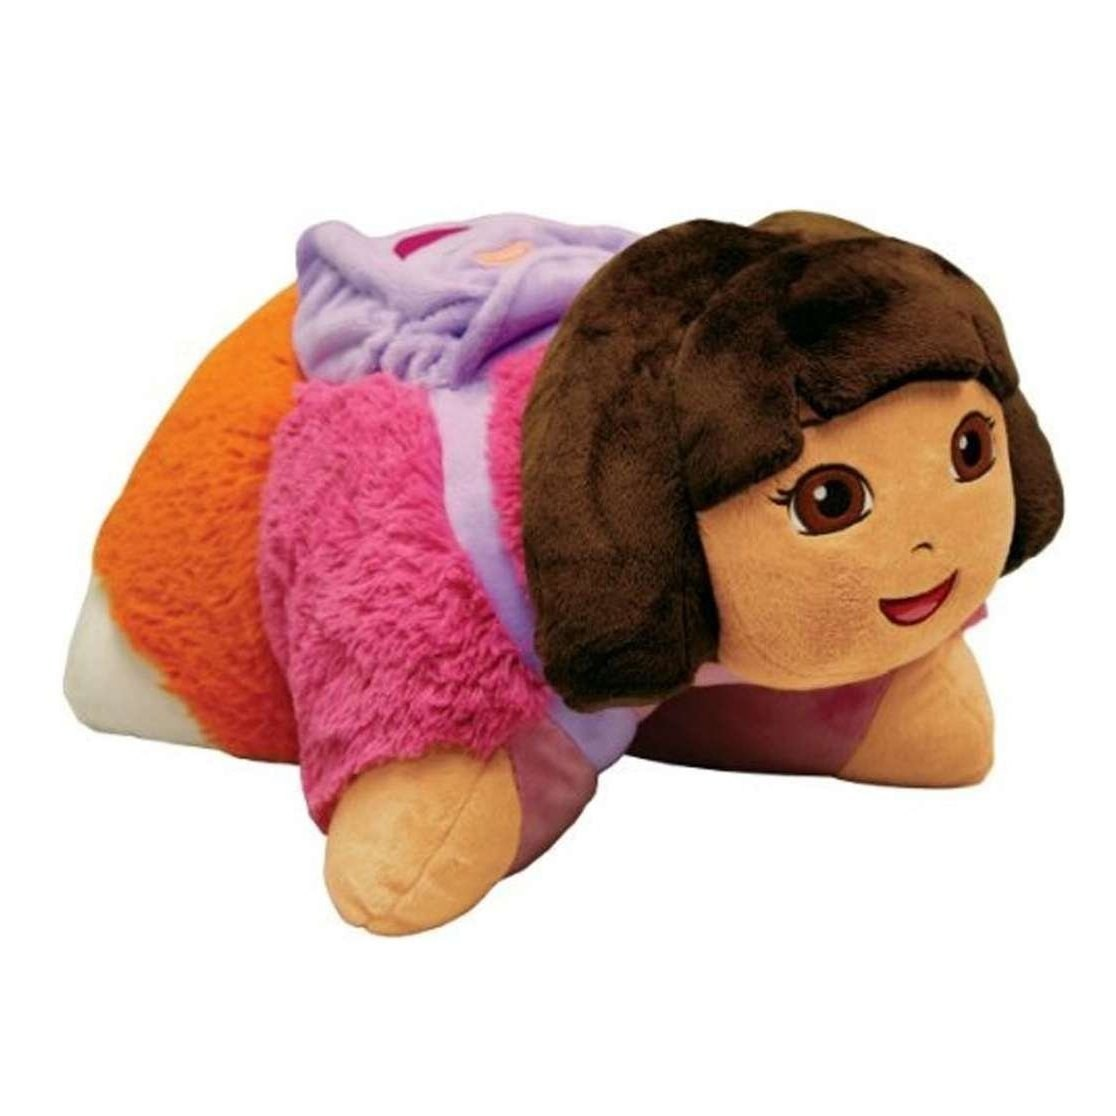 As Seen on TV Nickelodeon Pillow Pet, Dora the Explorer by Overstock